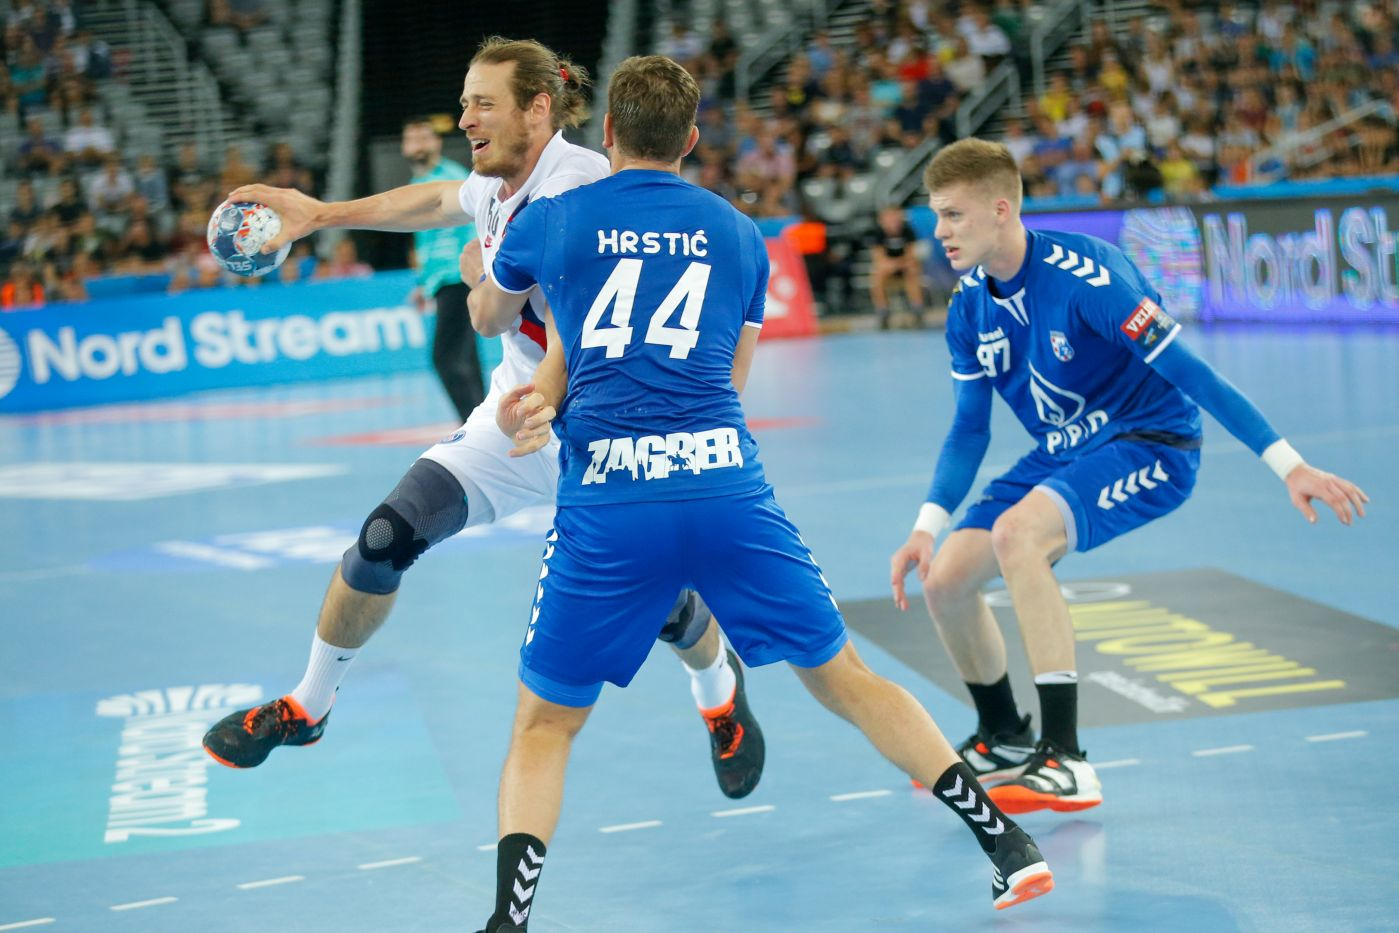 Velux Ehf Champions League 2019 20 Gallery